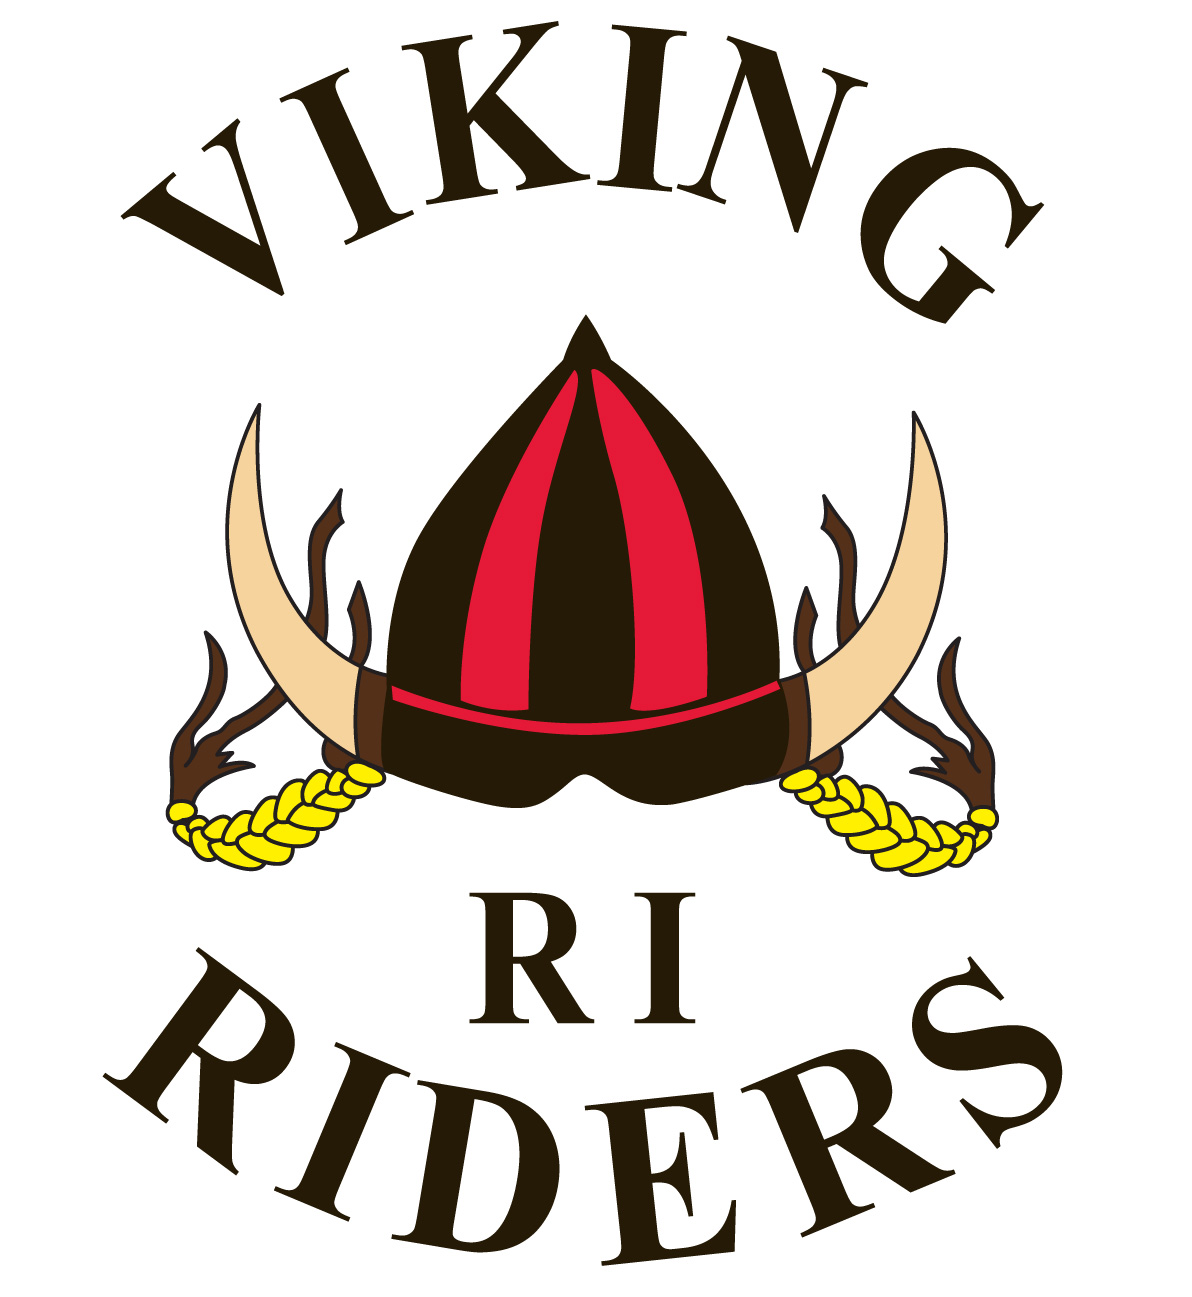 viking riders